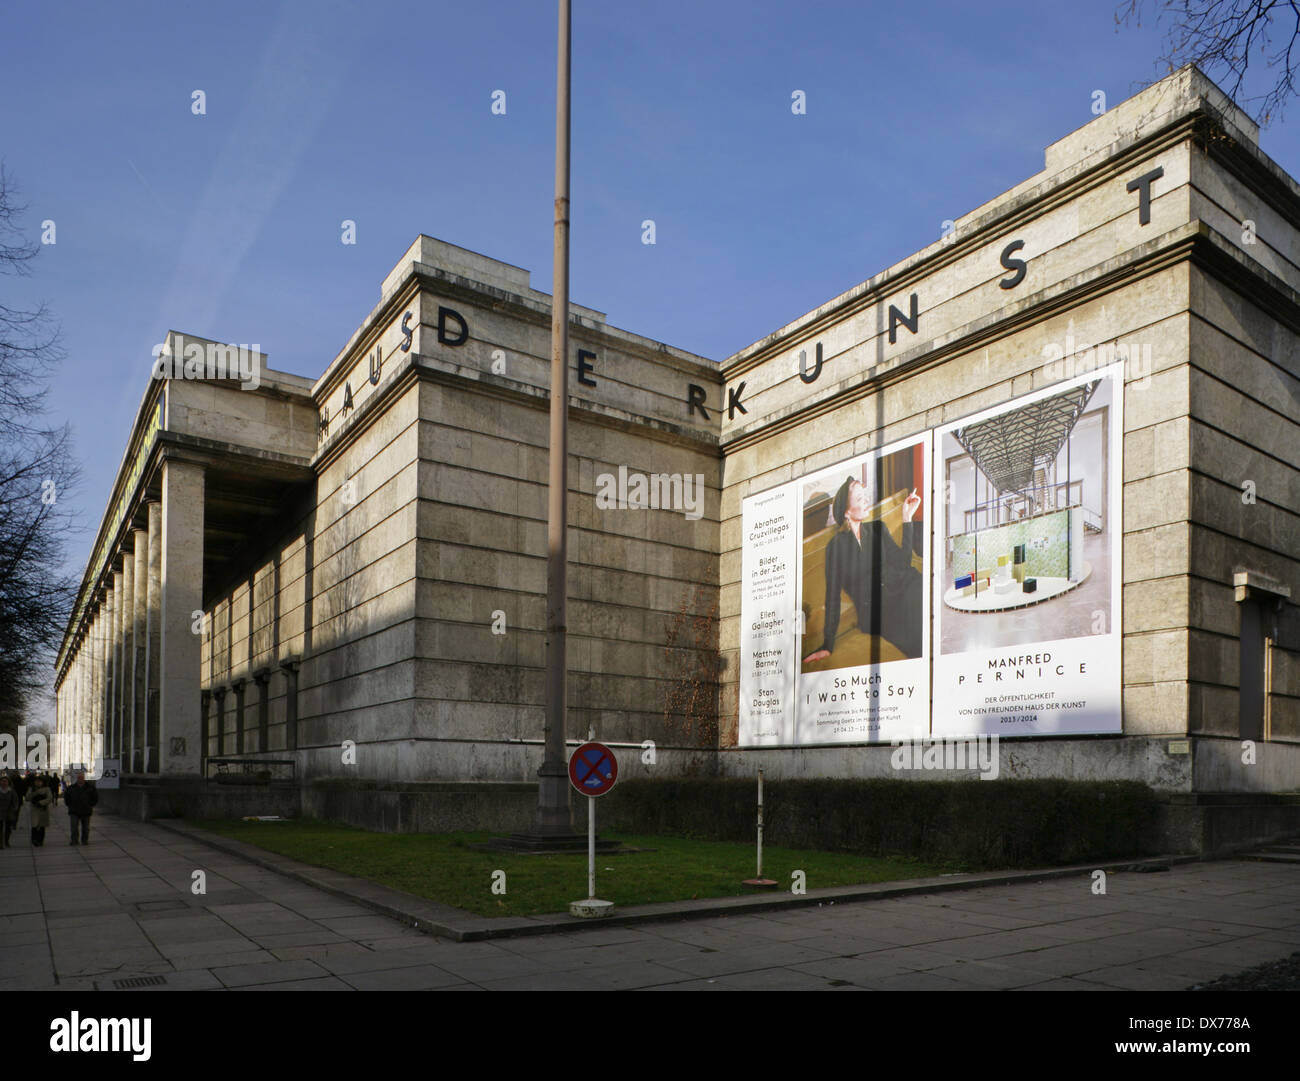 the haus der kunst or house of modern museum